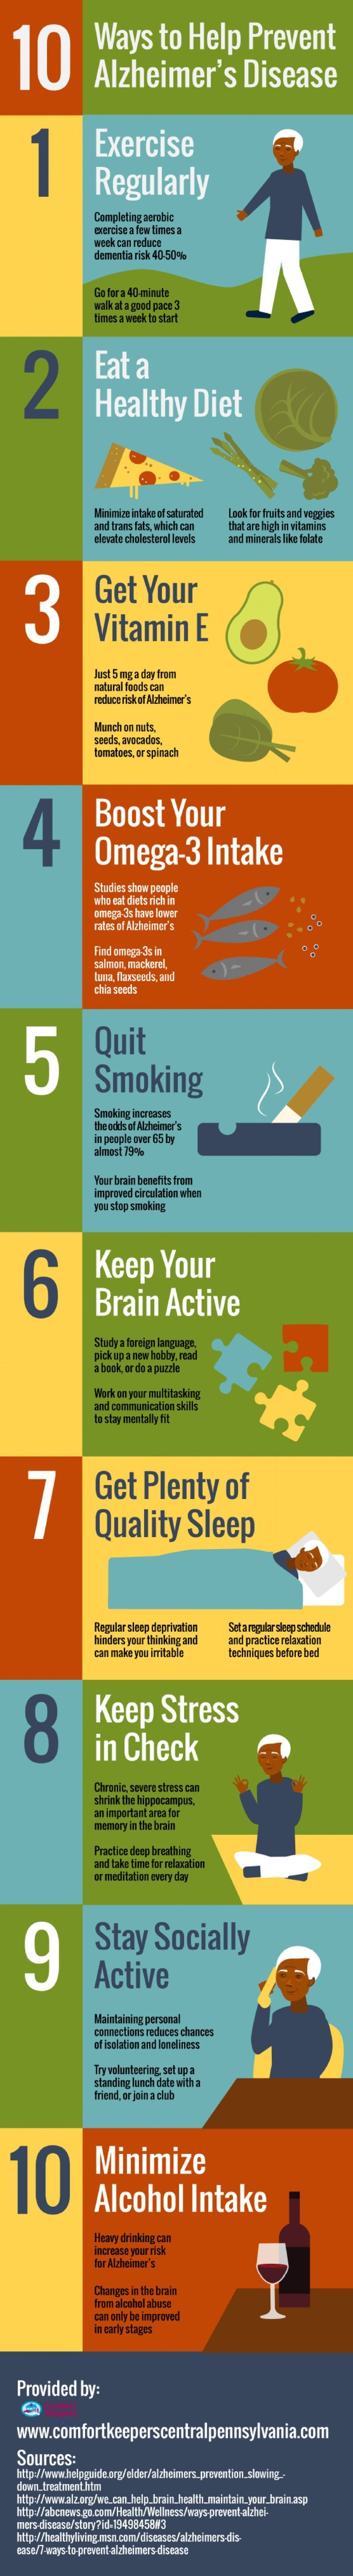 10 Ways to Help Prevent Alzheimer's Disease -shared by BrittSE on Mar 29, 201